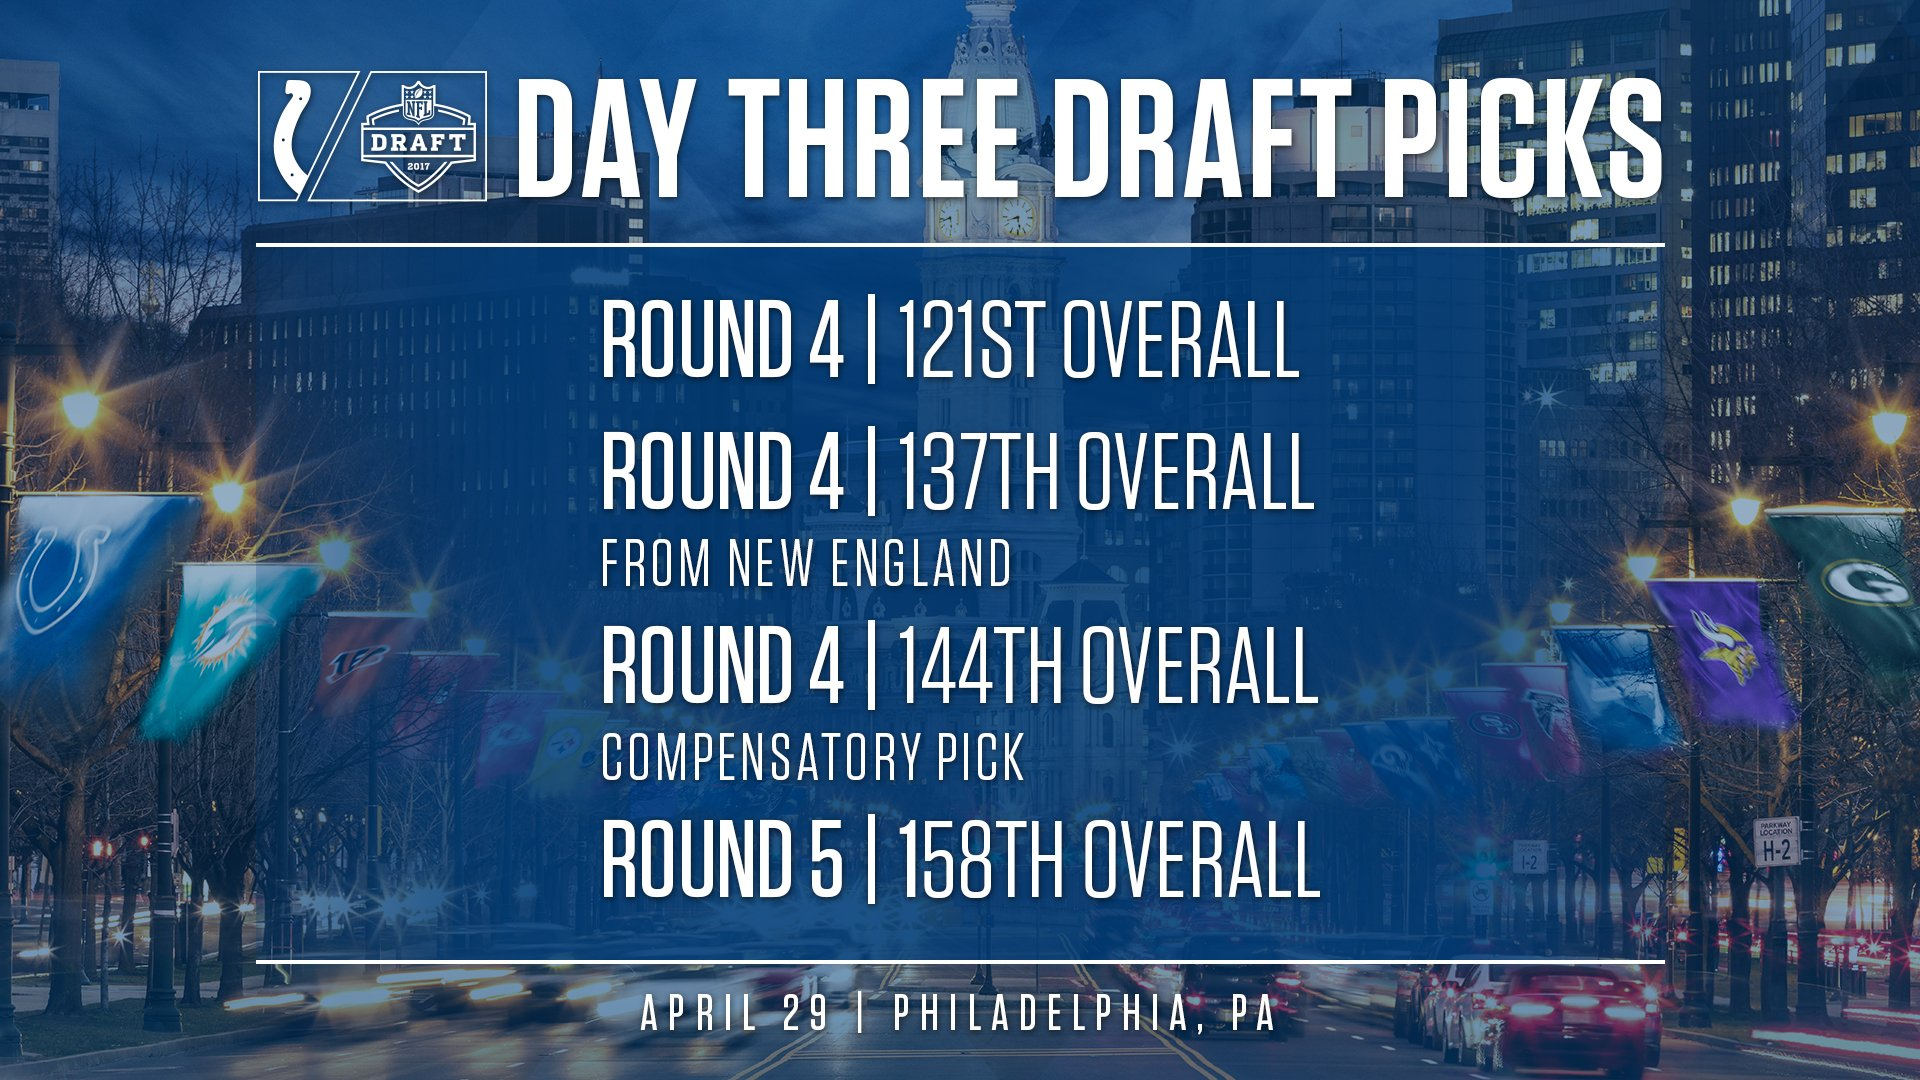 Four picks in rounds 4 and 5... will we add more? #ColtsDraft https://t.co/W9CyIcN5T3